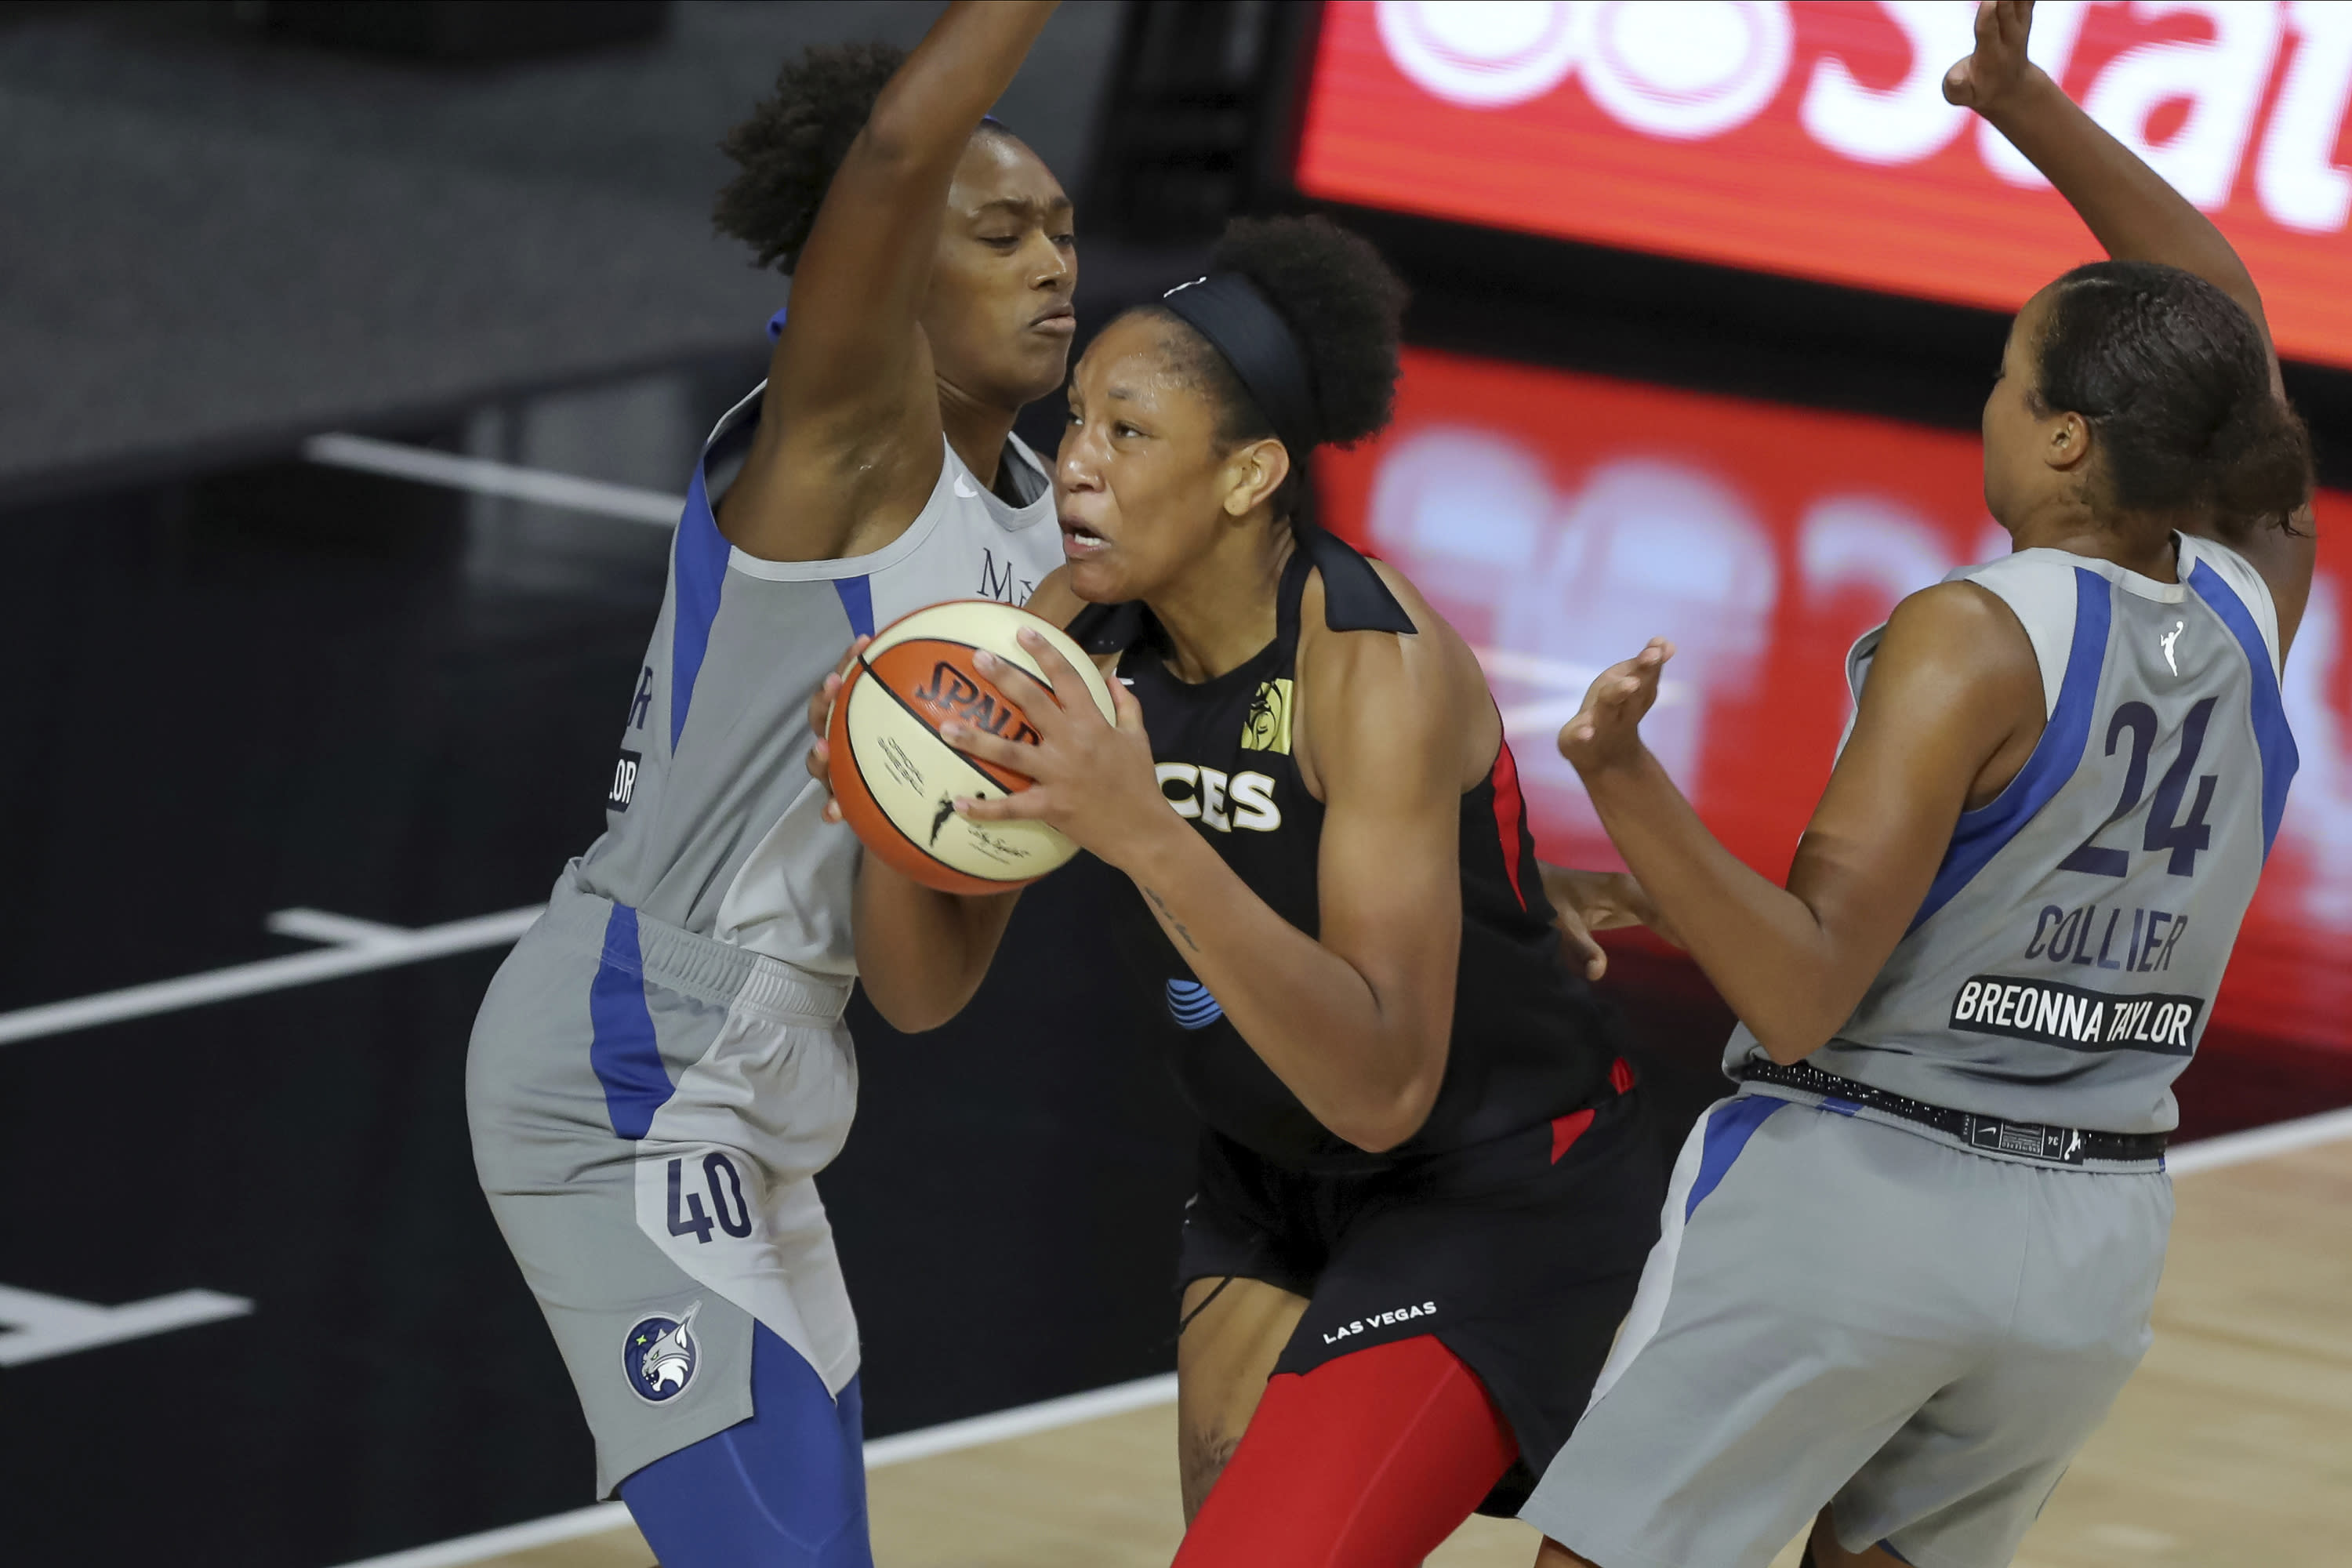 WNBA postpones Wednesday's games after players decide not to participate